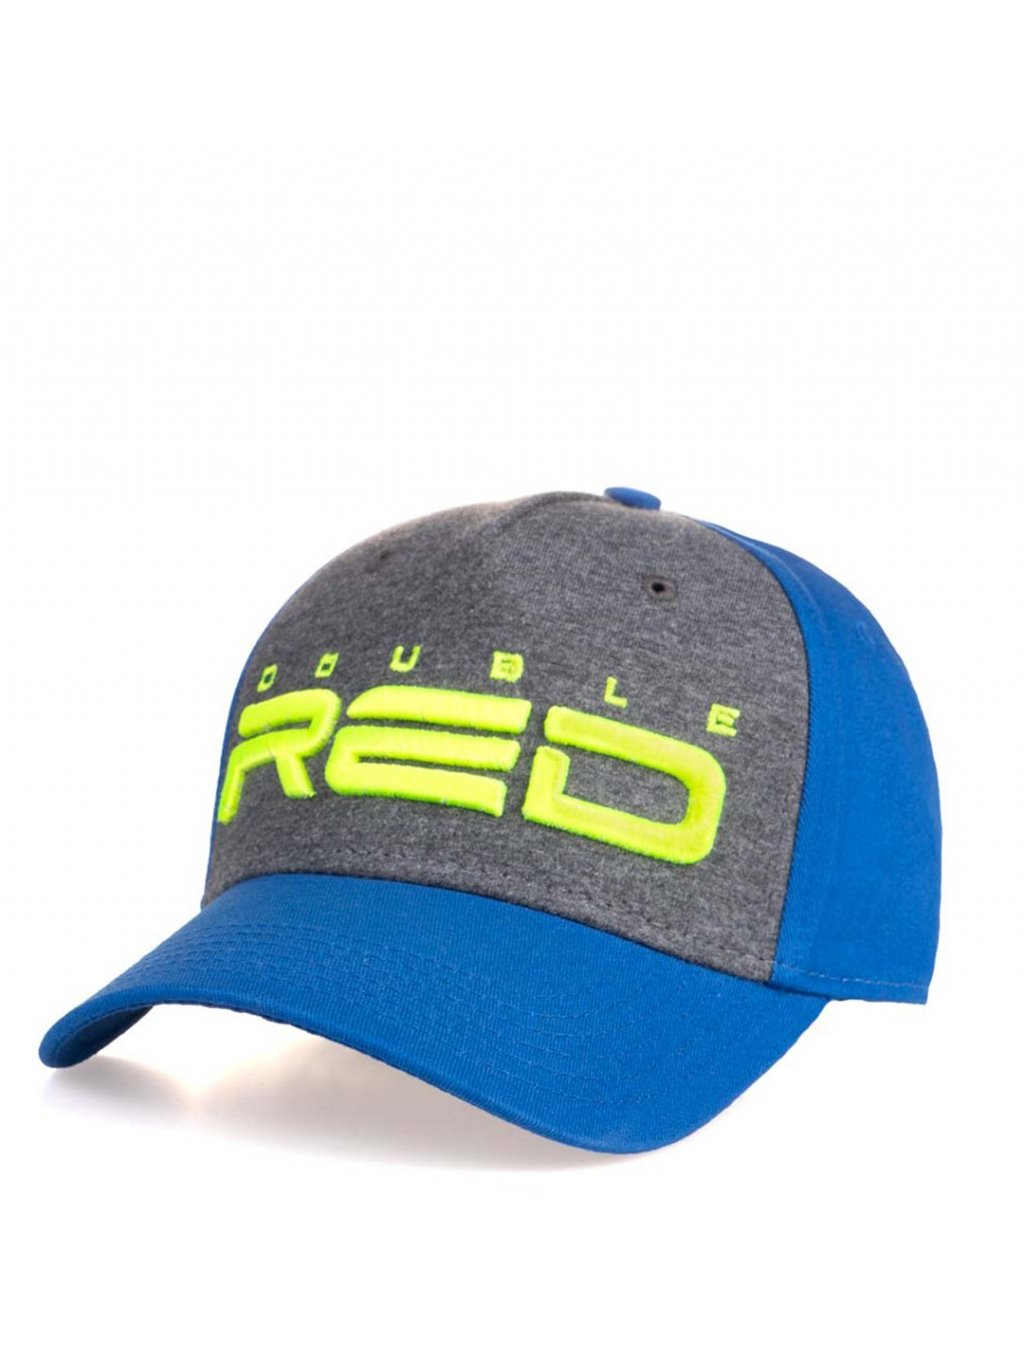 Kšiltovka DOUBLE RED JERSEY Winter Edition Neon Streets Green Cap